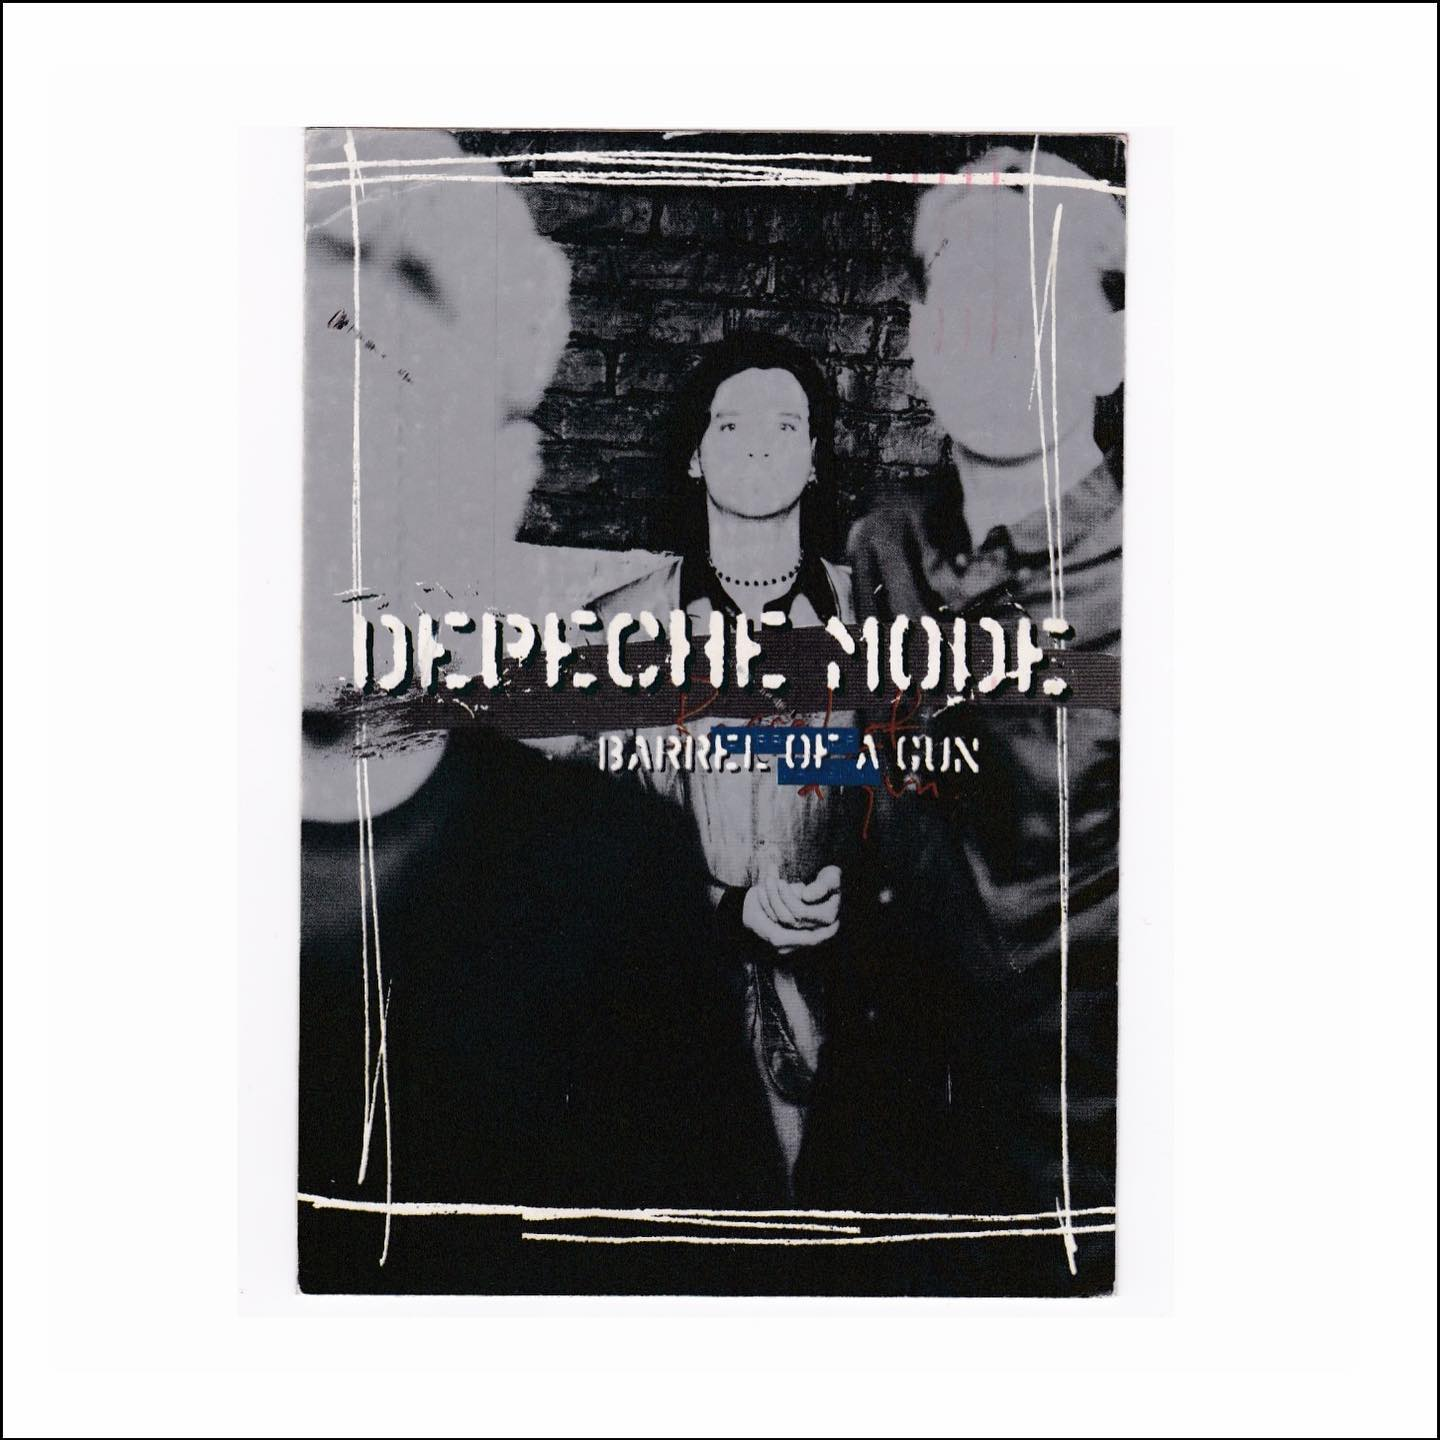 'Barrel Of A Gun' Postcard, Depeche Mode (1997)   From the days when bands sent postcards to announce their new releases, by Second Class delivery. Note the phone number on the rear where you could 'Hear It Now' for 45p a minute. #depechemode #postcard